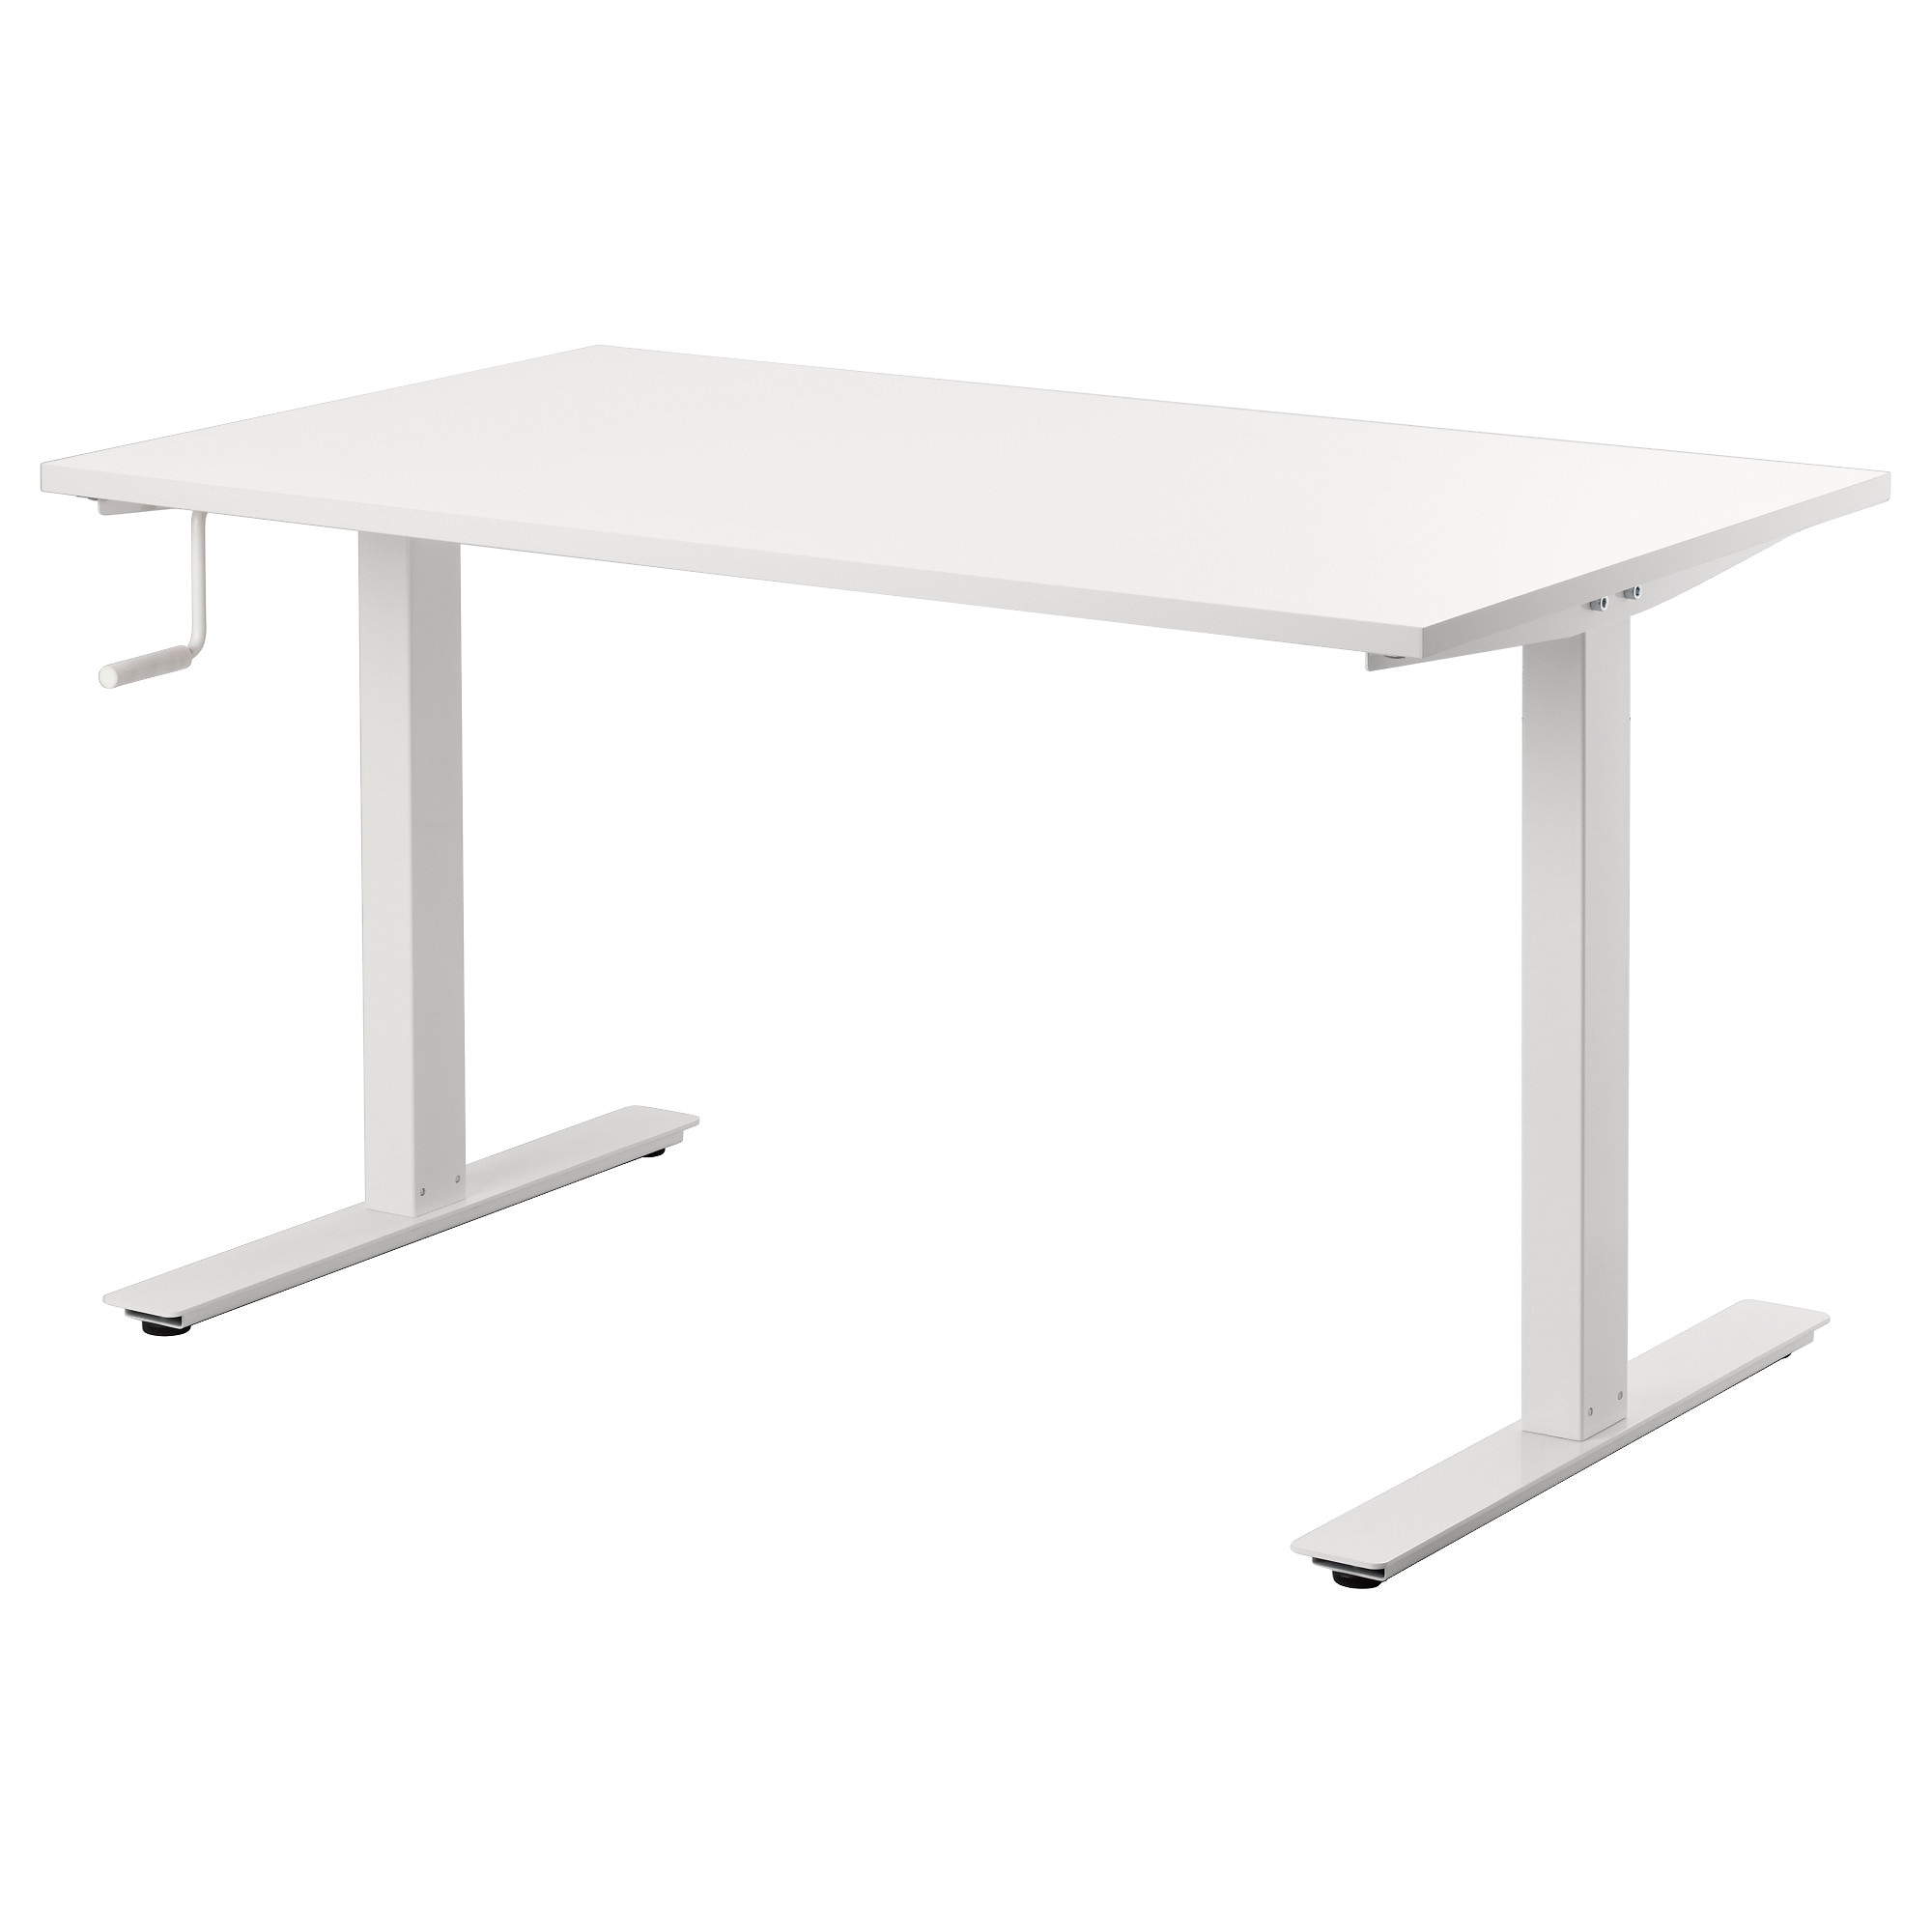 poppin height base images desk facing handed white with legs l charcoal adjustable shaped loft right